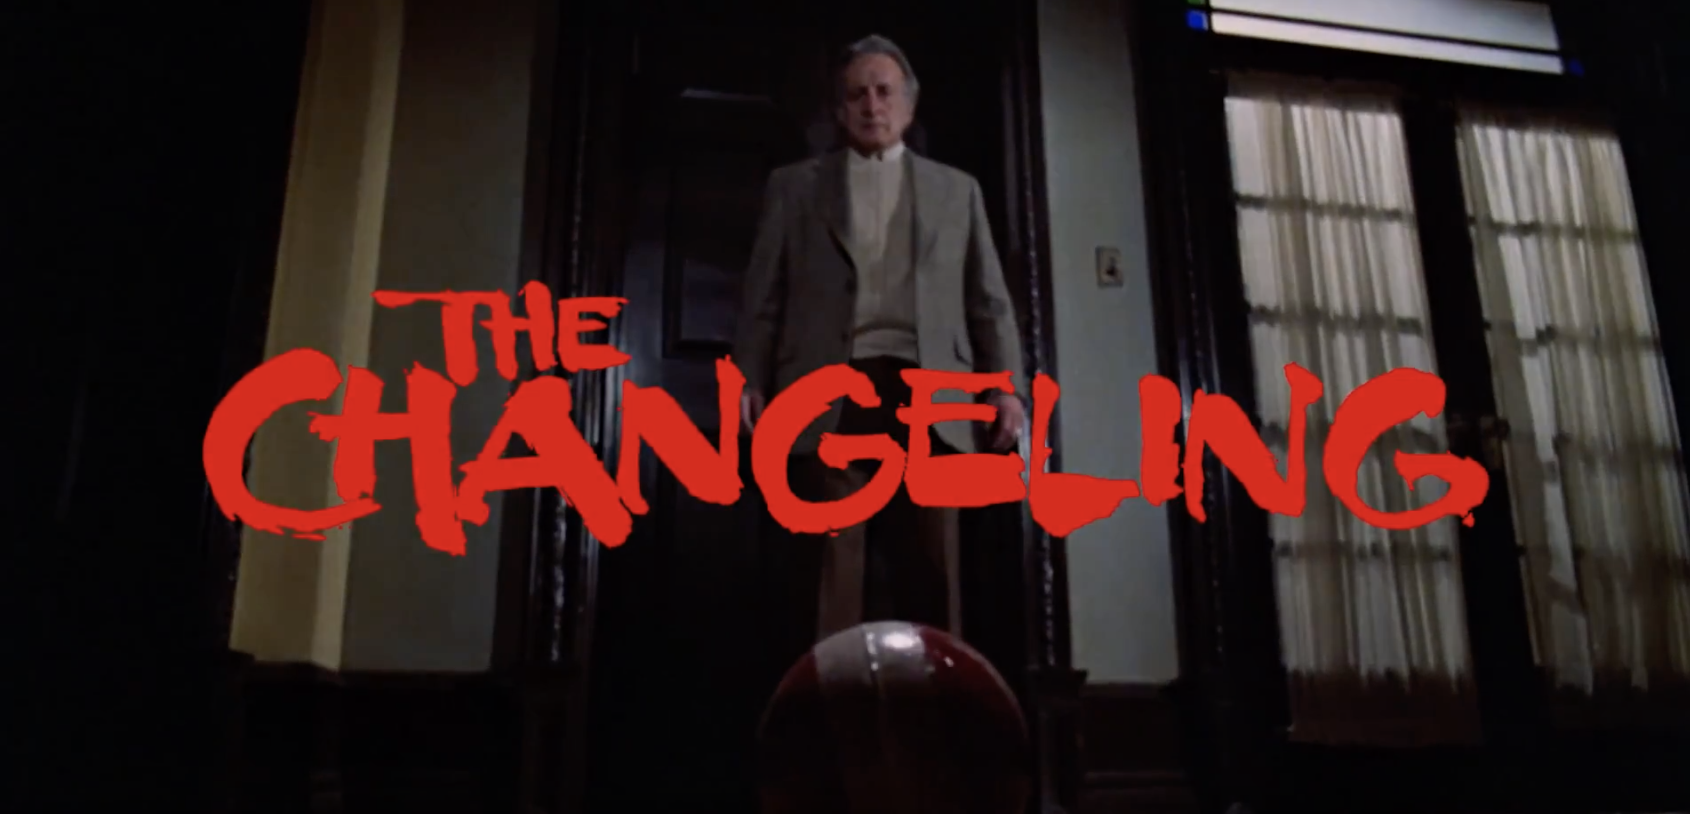 Image courtesy The Changeling Official Severin Films Trailer via  SeverinFilmsOfficial  on YouTube